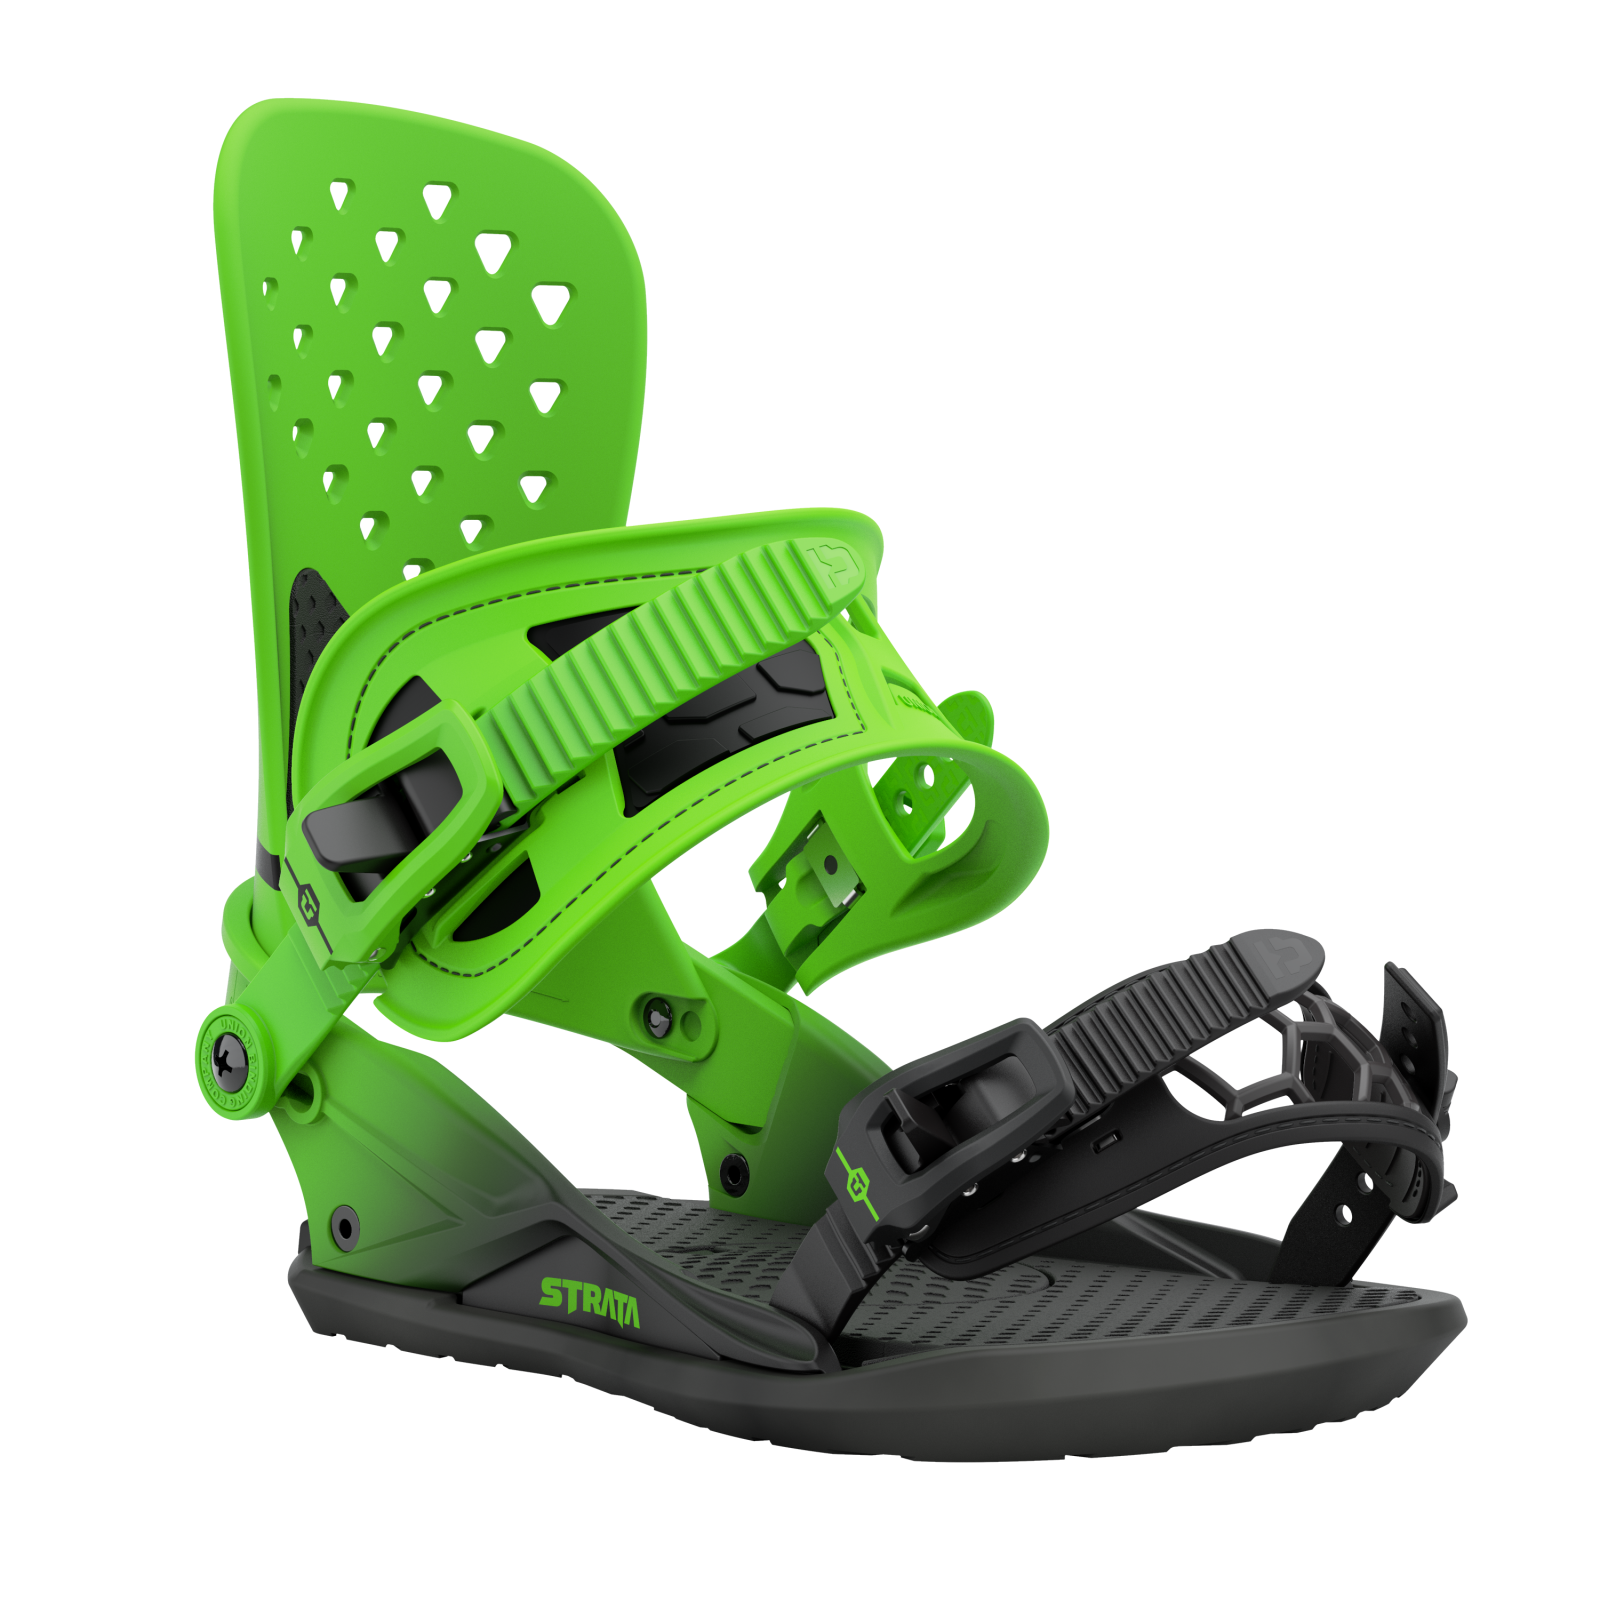 Union Strata Snowboard Binding (Multiple Color Options)